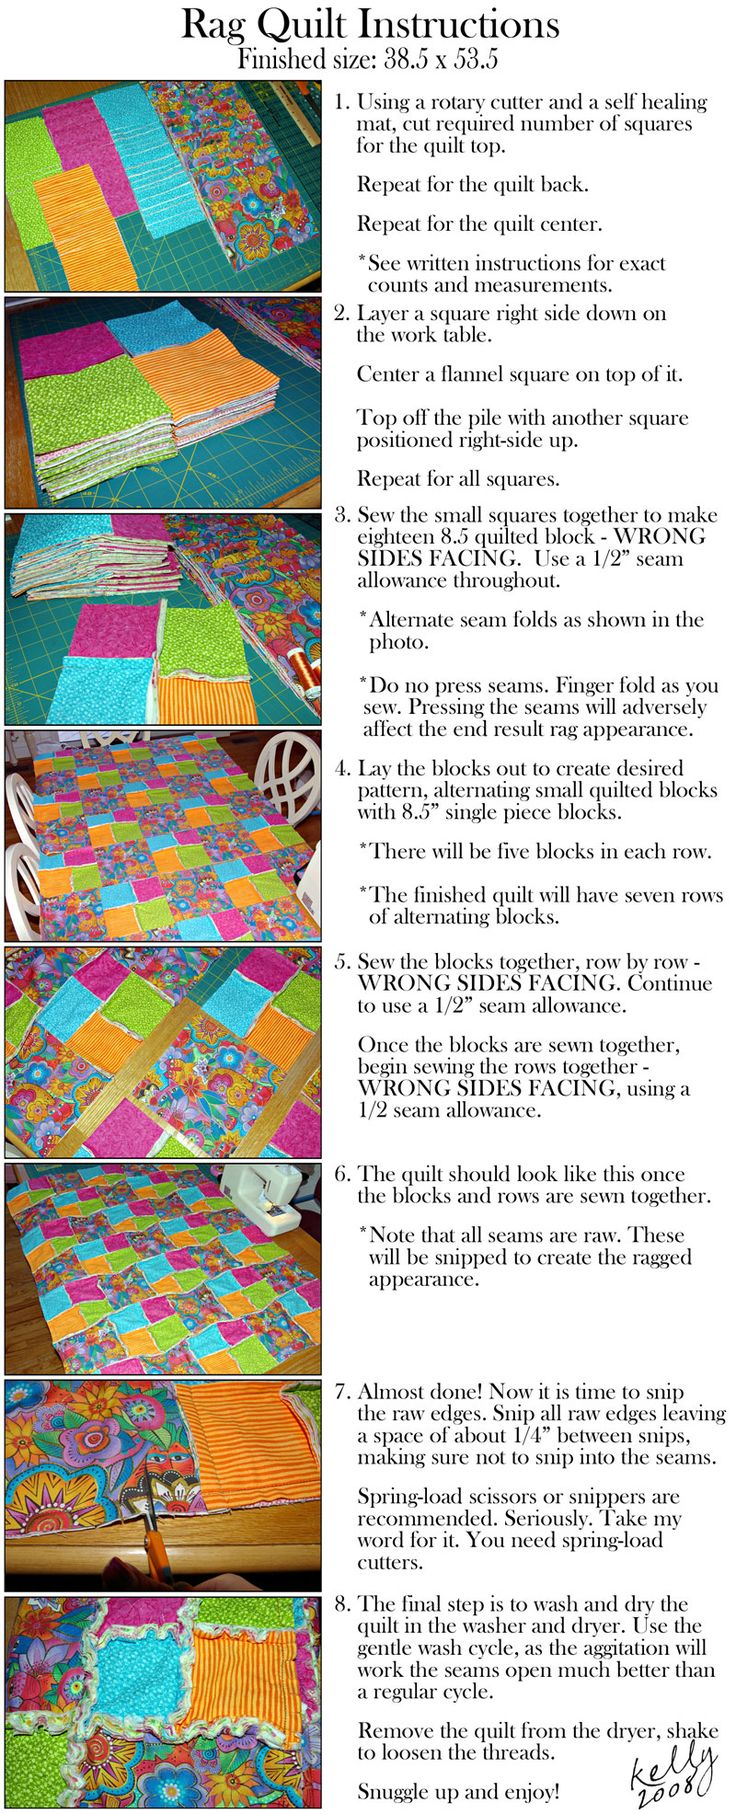 rag quilt instructions | Quilt | Pinterest